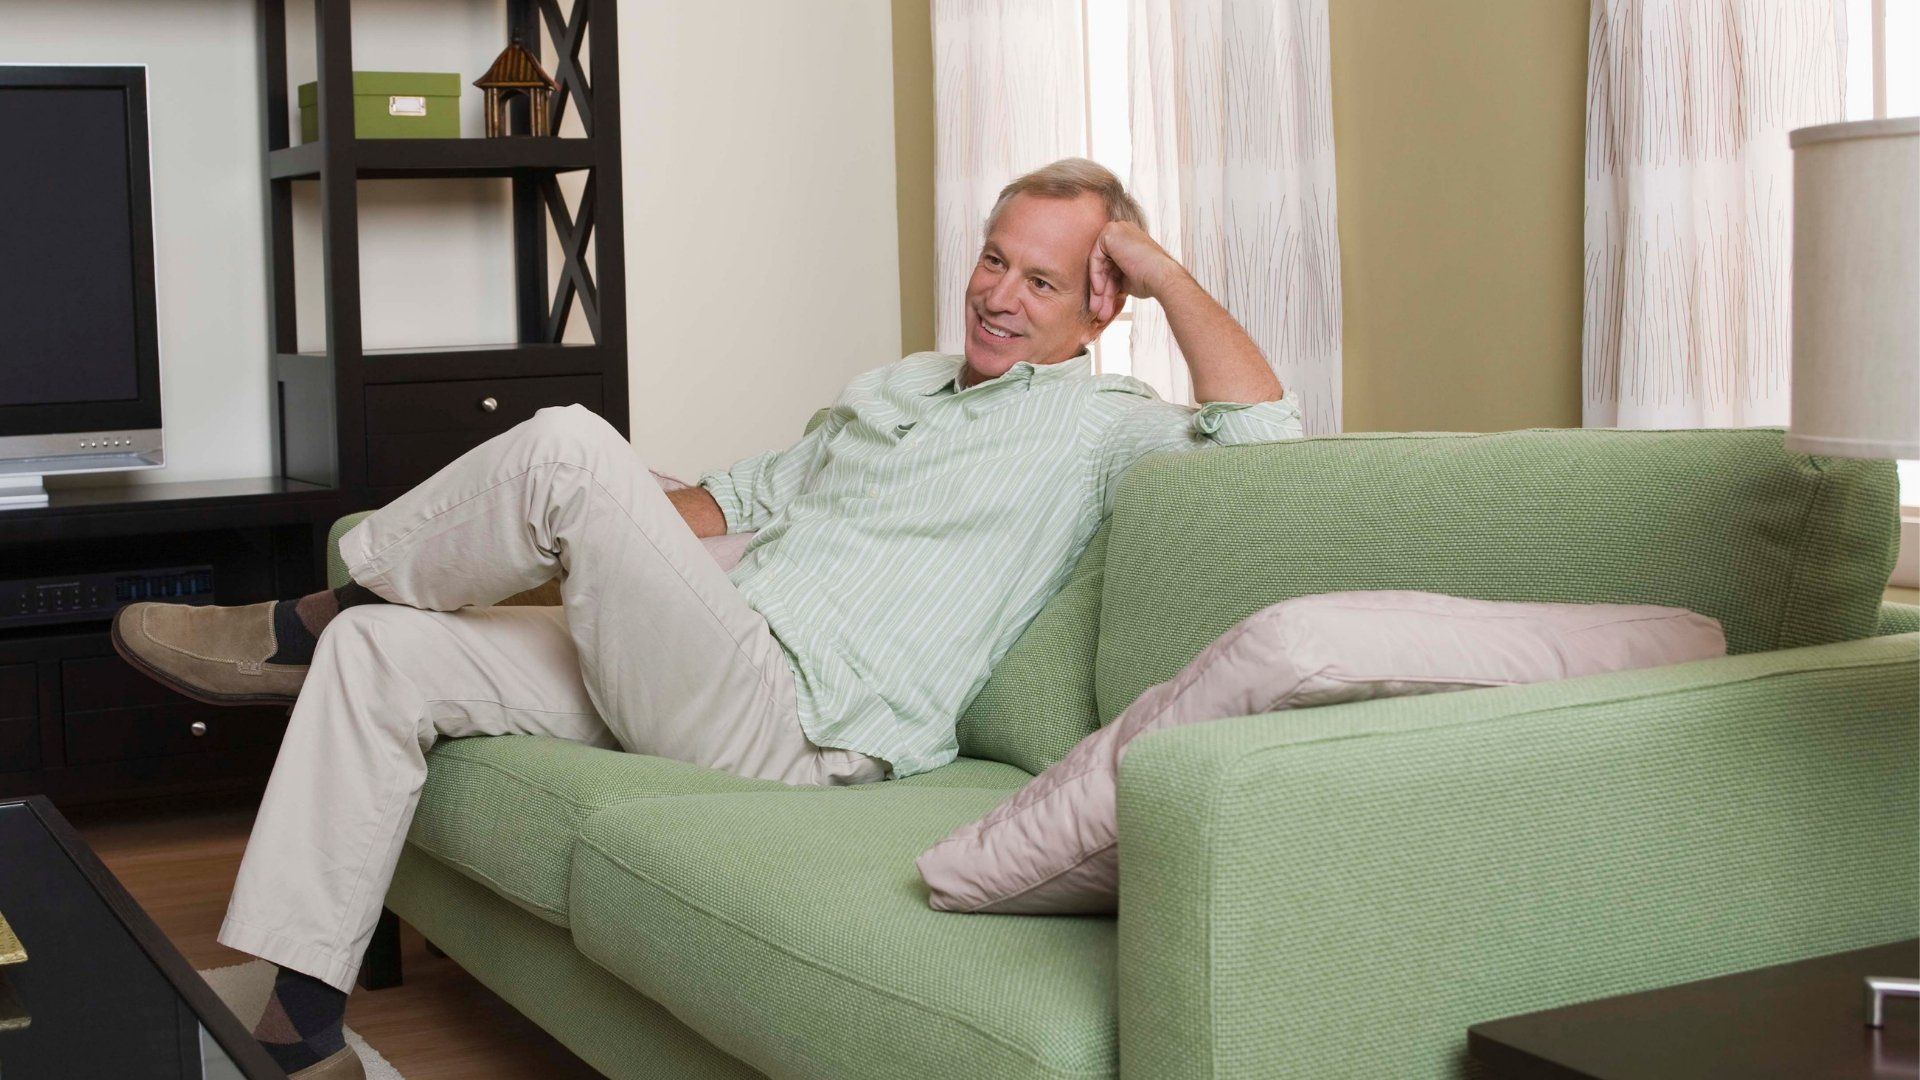 Man Sitting on Couch Wondering How the Air Moves Through His House